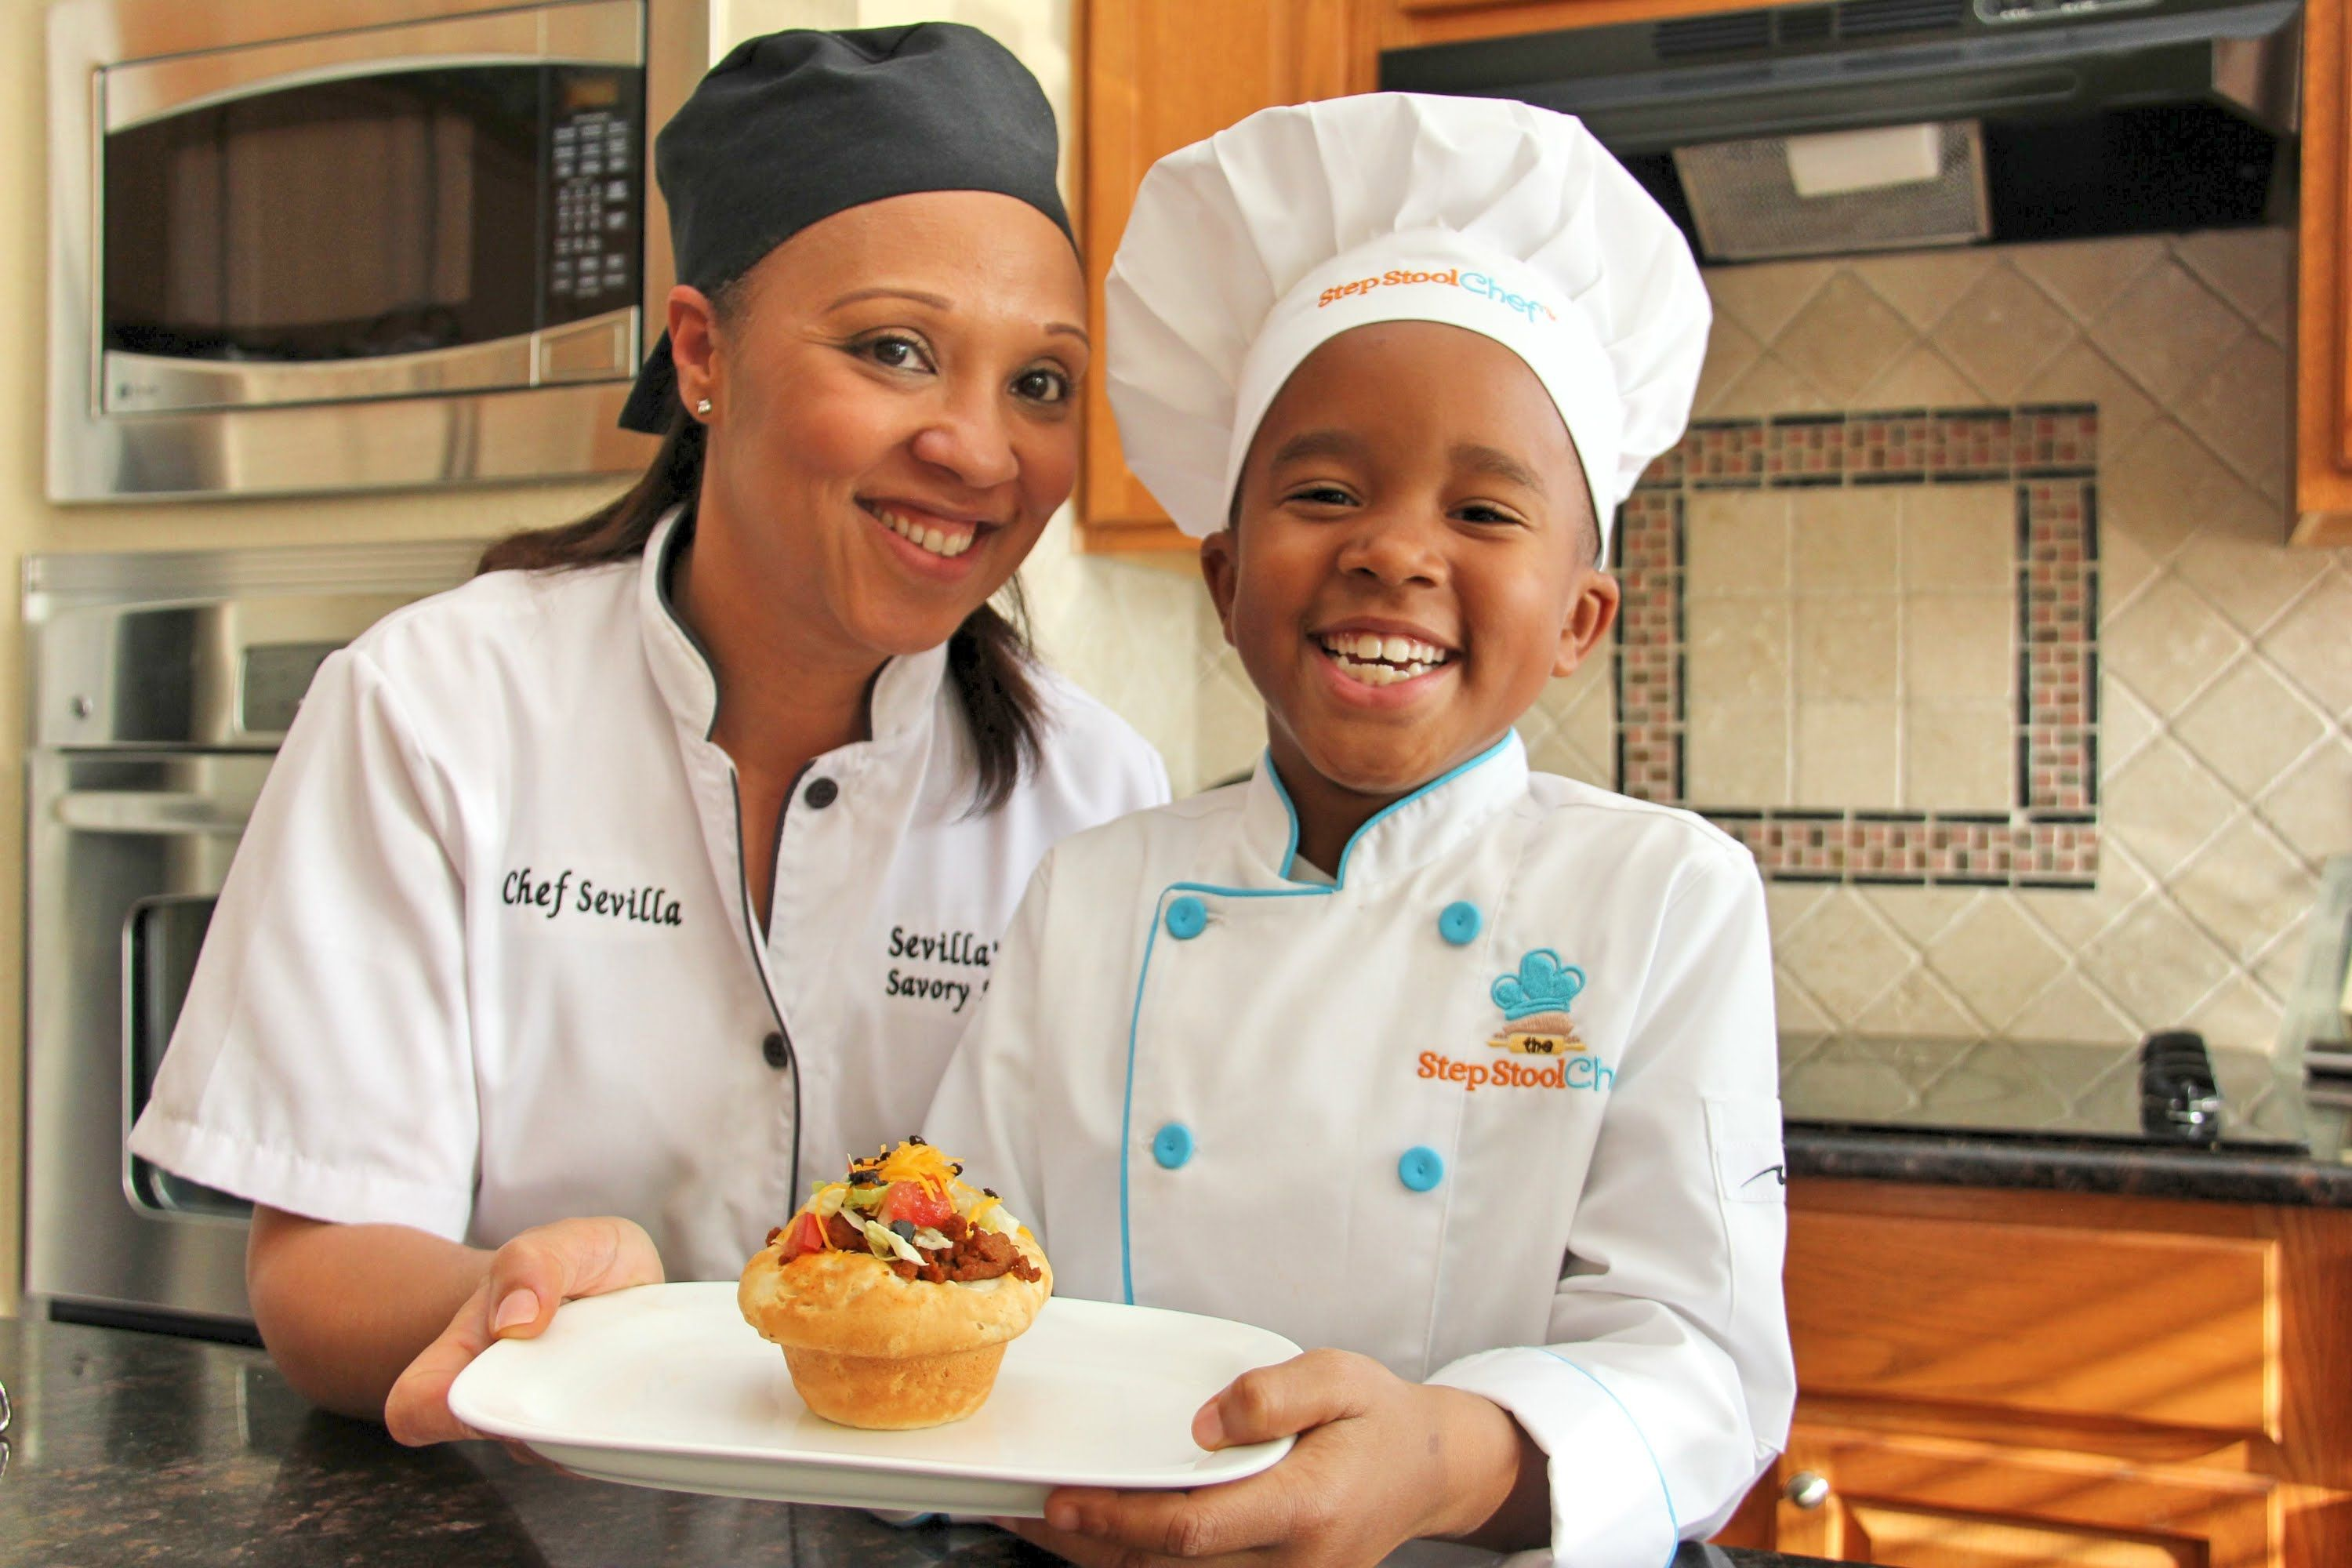 Knife Safety Tips for Kids with Chef Sevilla Riley and The